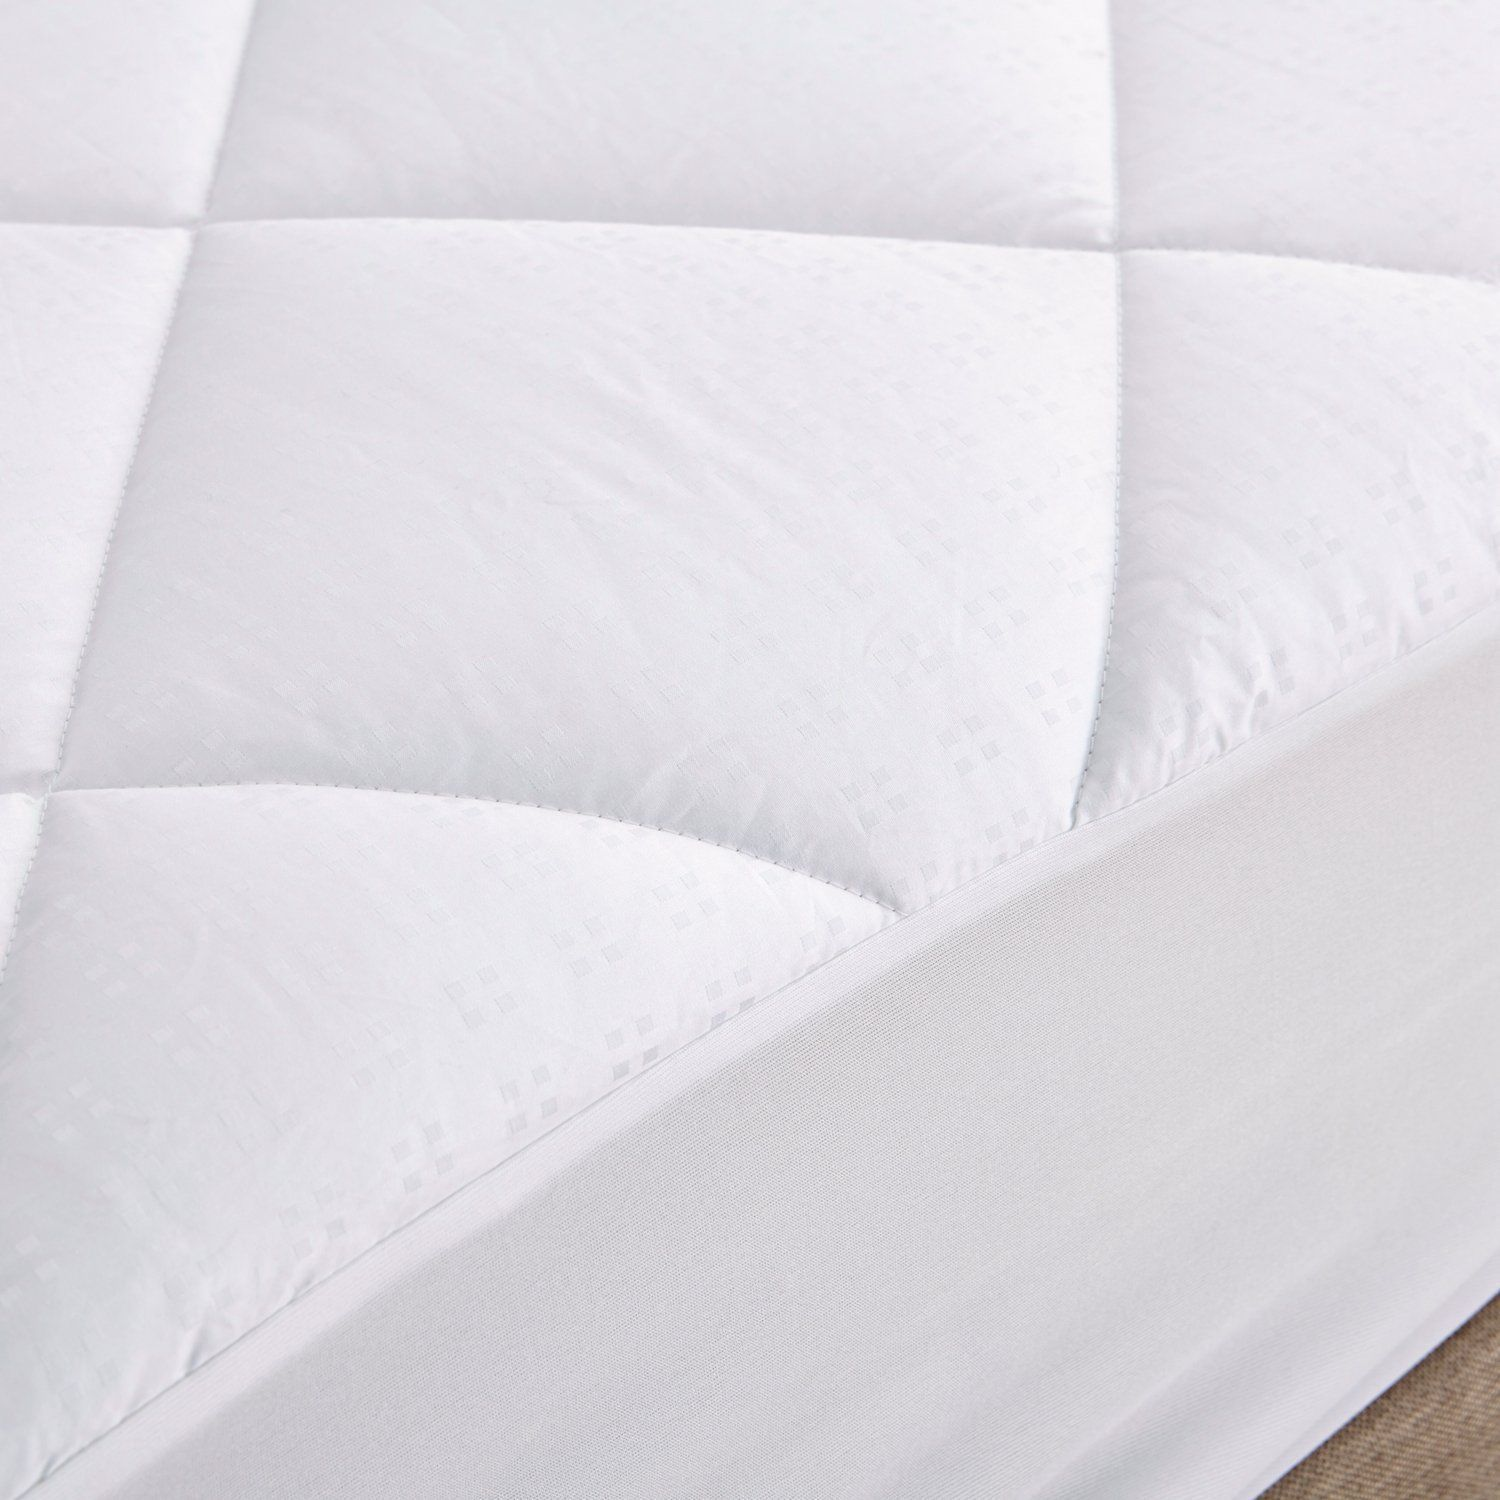 Mattress Pad Twin Size 100 Cotton Topper Pillow Top Bed Cover Comforter Bedroom Mattress Pads